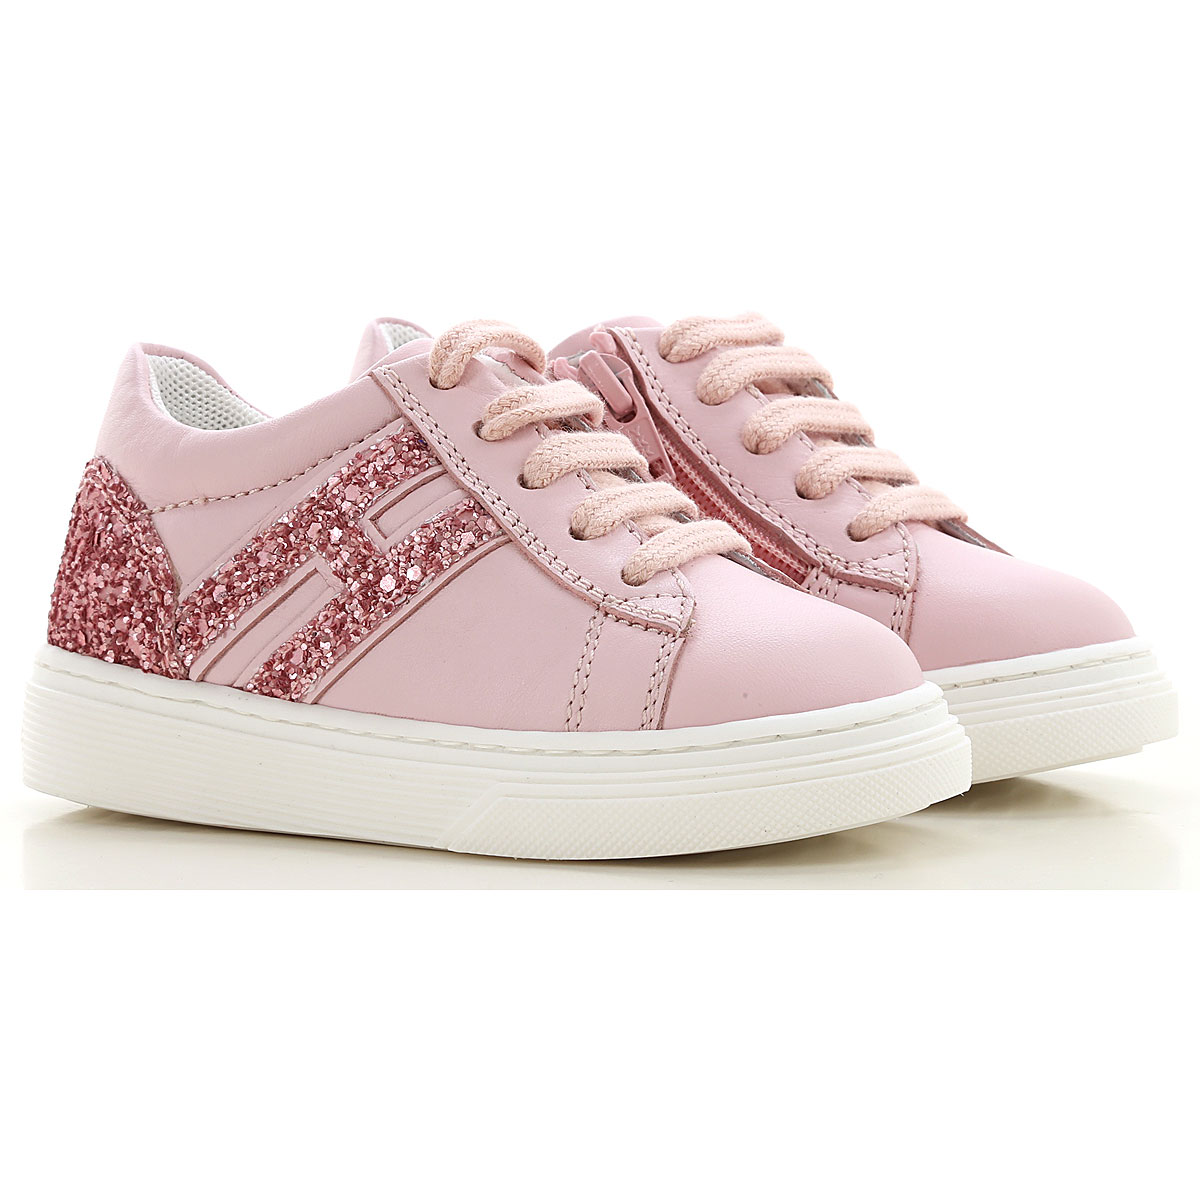 Hogan Girls Clothing On Sale, Pink, Calf Leather, 2019, 24 26